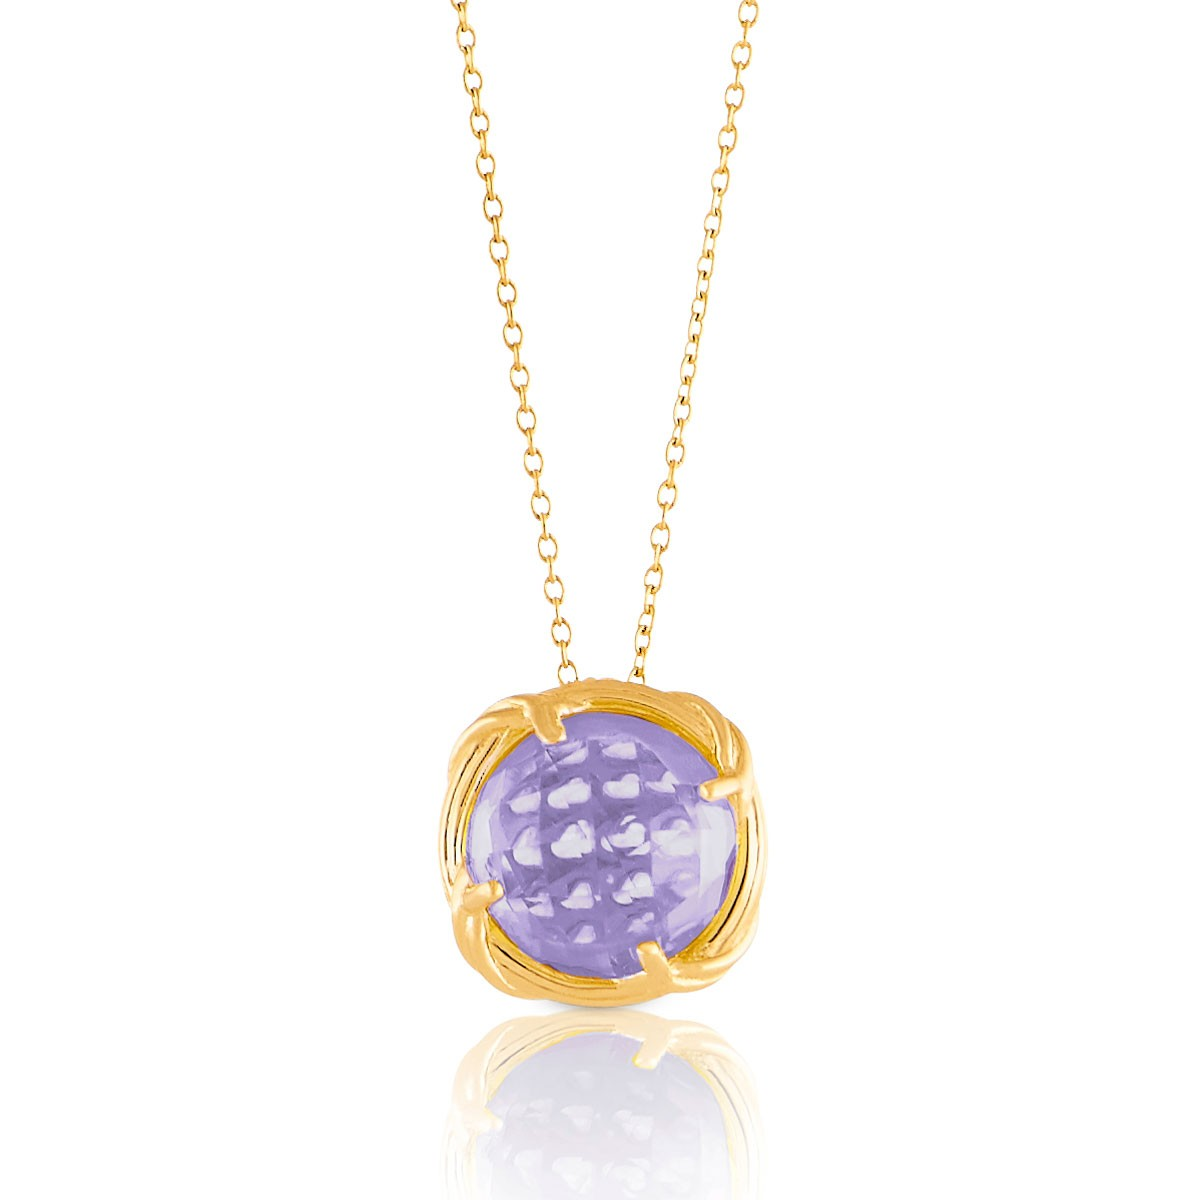 Fantasies Lavender Amethyst Necklace in 18K yellow gold